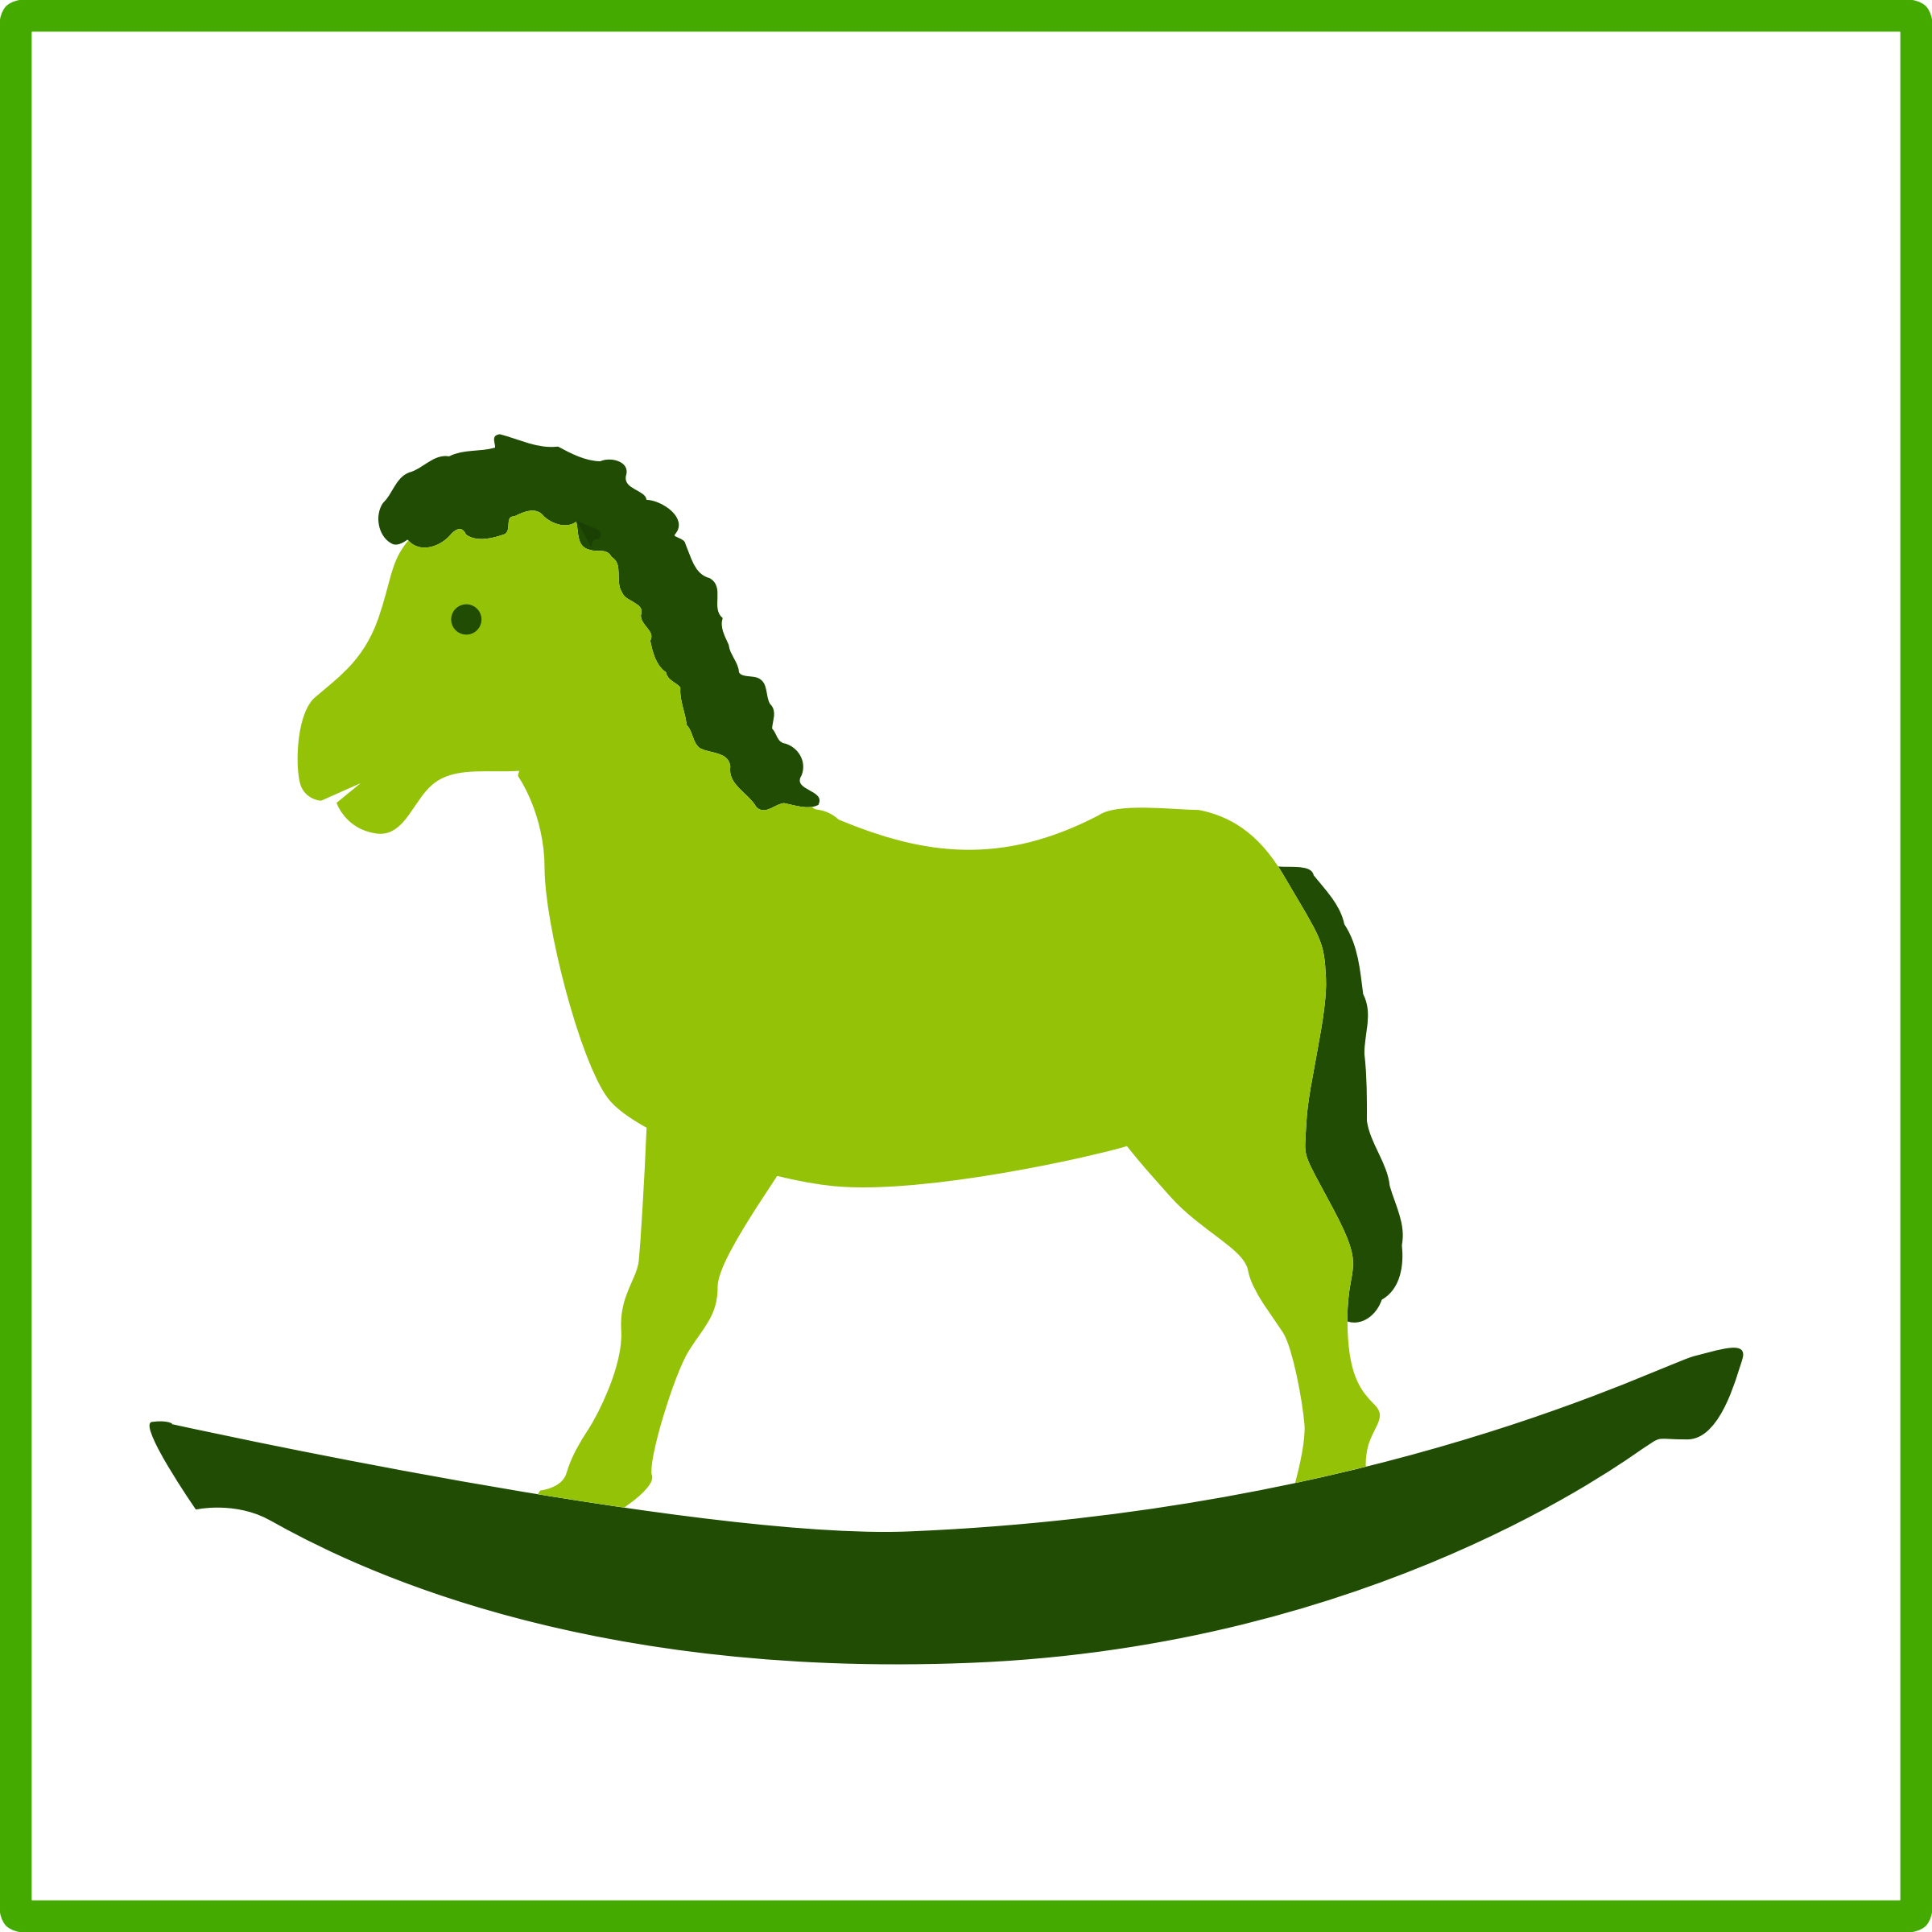 eco green toy icon by dominiquechappard